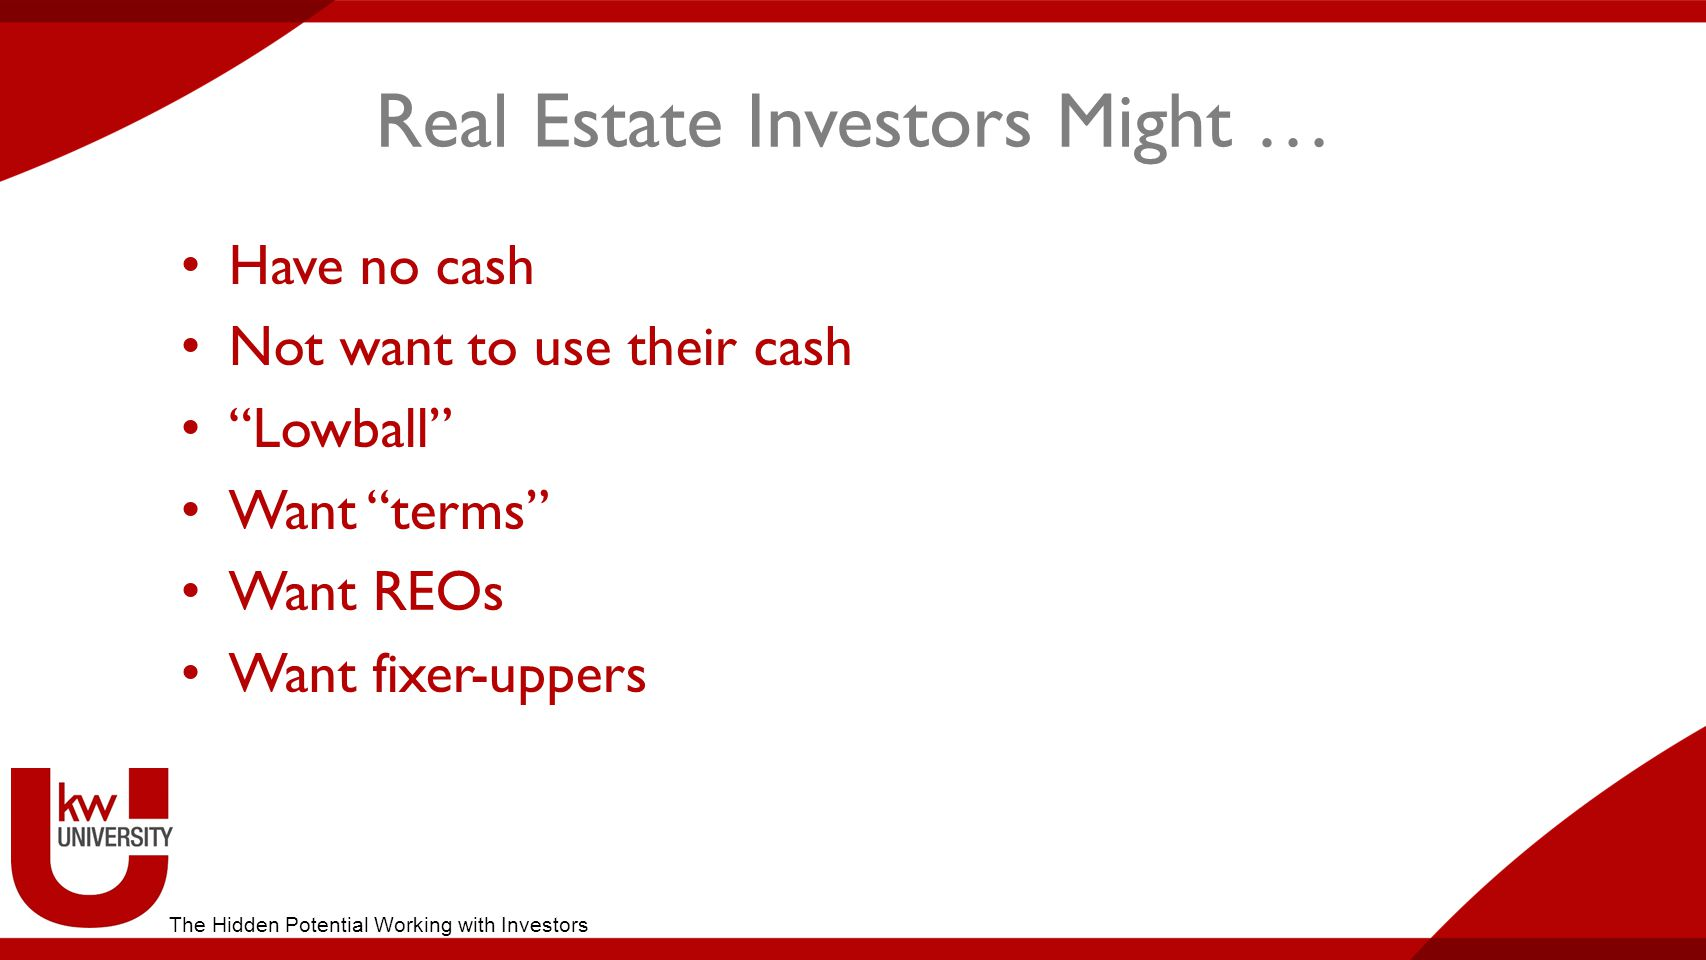 Real Estate Investors Might … Have no cash Not want to use their cash Lowball Want terms Want REOs Want fixer-uppers The Hidden Potential Working with Investors